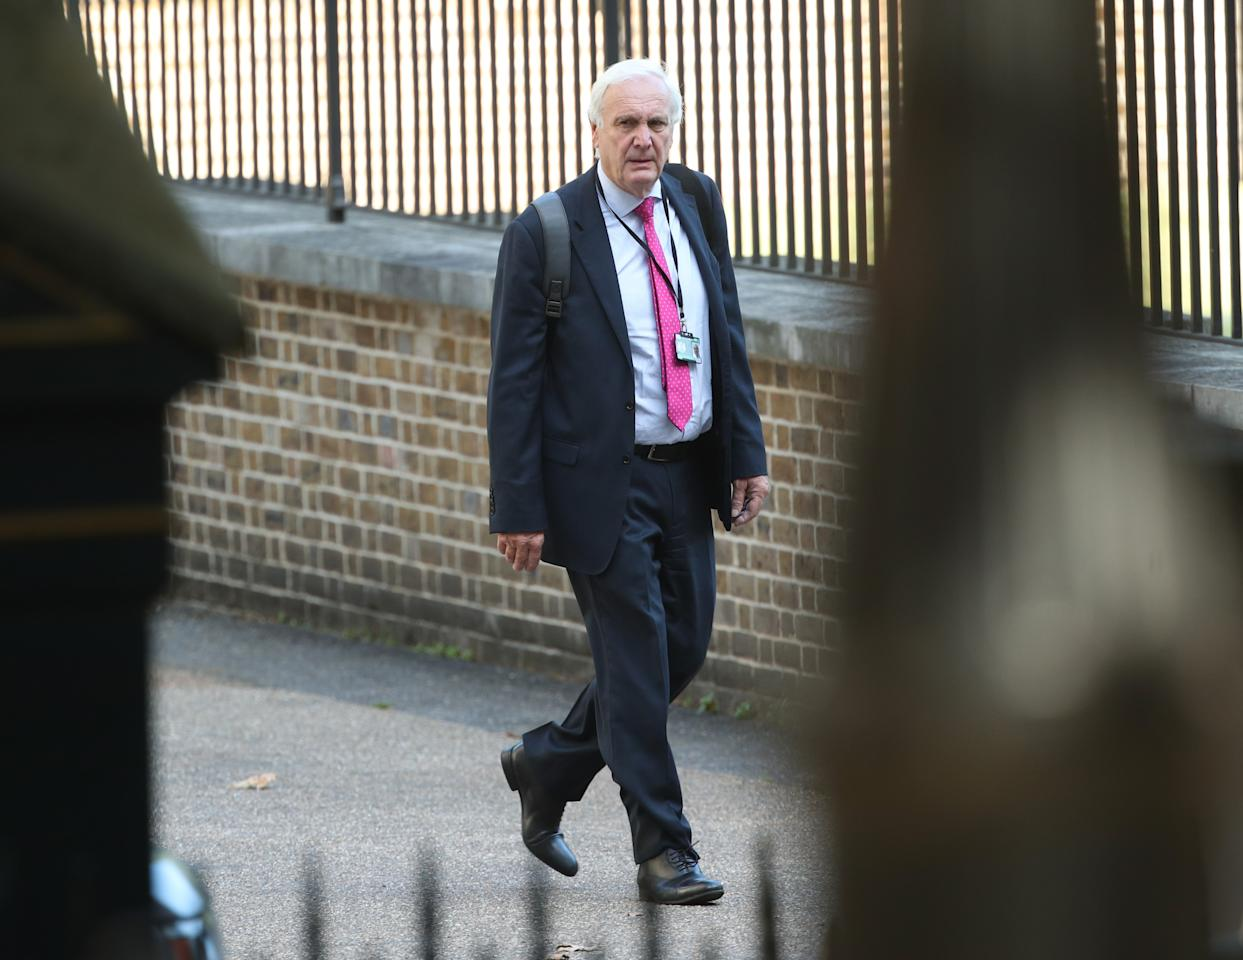 Sir Edward Lister, Boris Johnson's chief of staff, arrives in Downing Street in London.